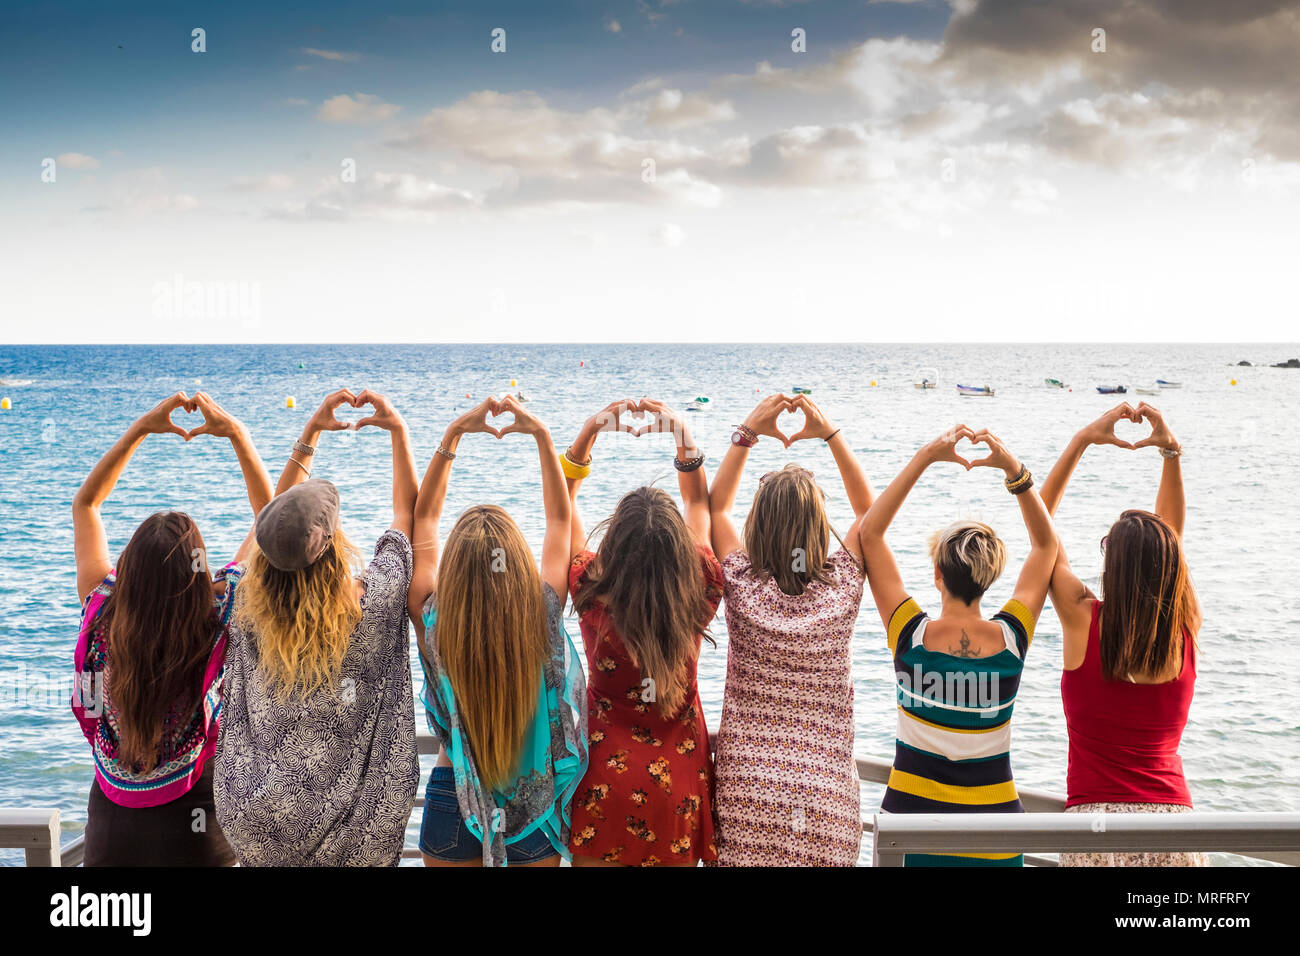 beautiful seven girls from the backside doing a heart with the hands looking at the ocean waiting the sunset in vacation leisure activity. friendshipt - Stock Image